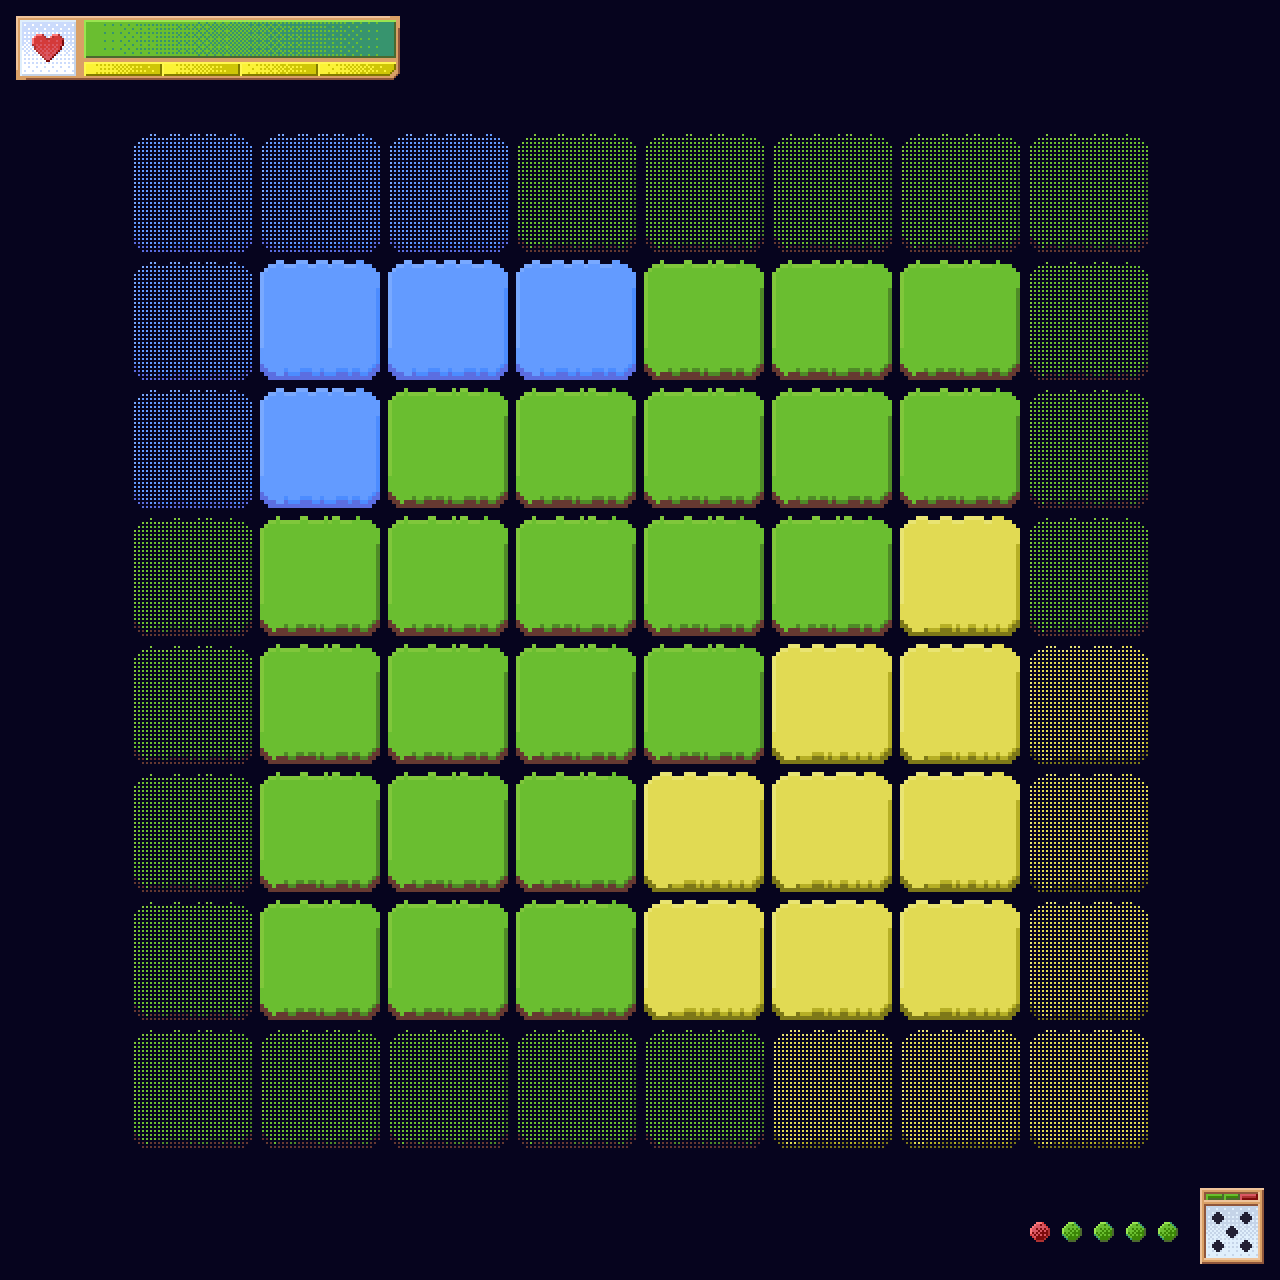 The pixel-art based tiling and UI.